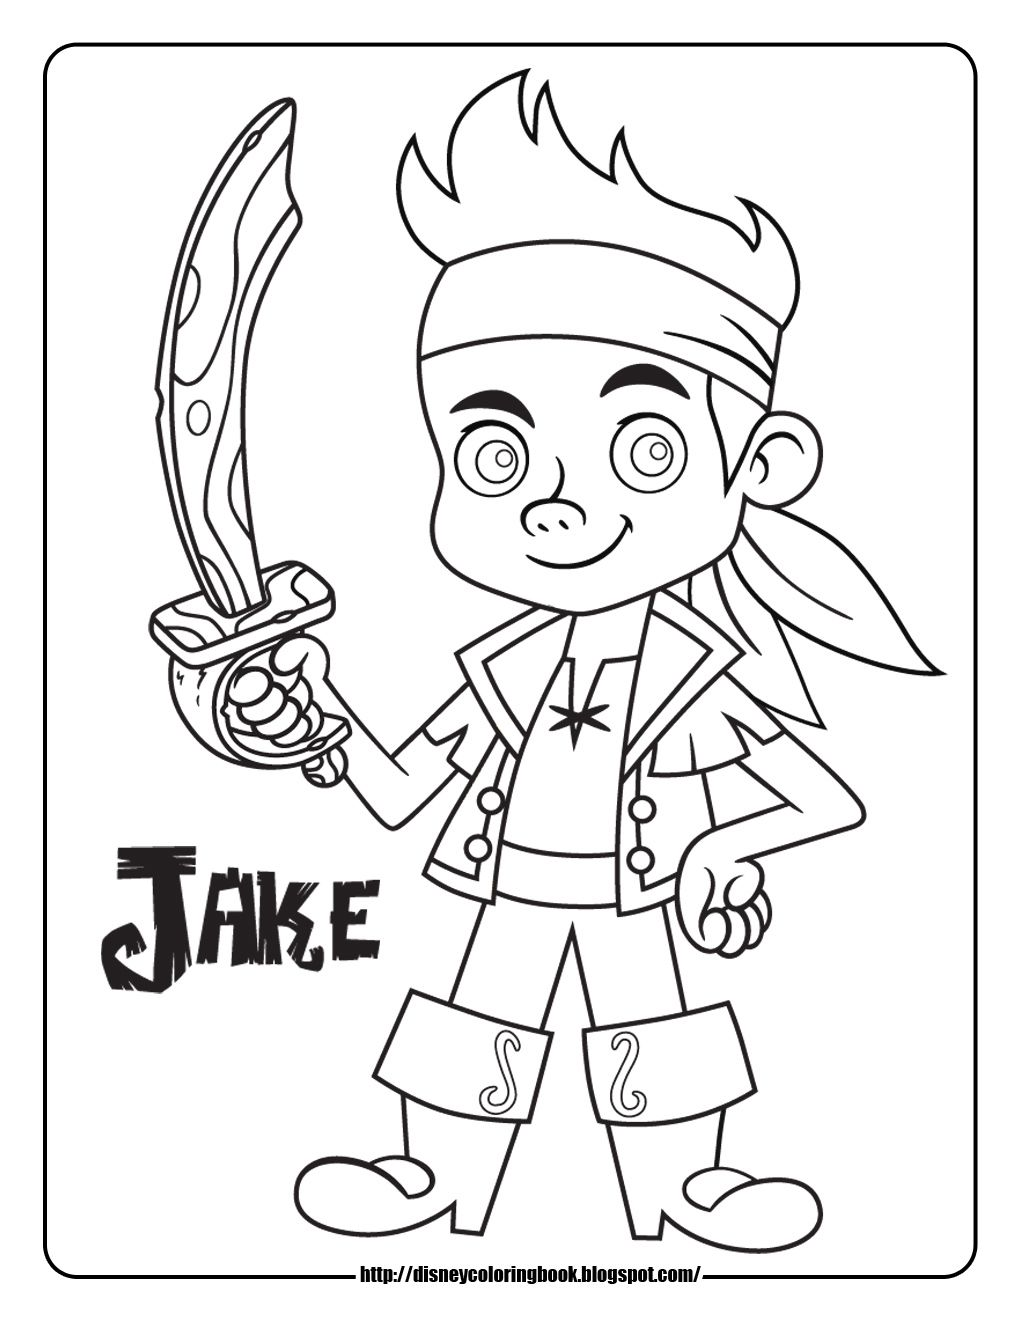 Jake and the never land pirates coloring picture coloring pages pinterest birthdays pirate birthday and birthday party ideas